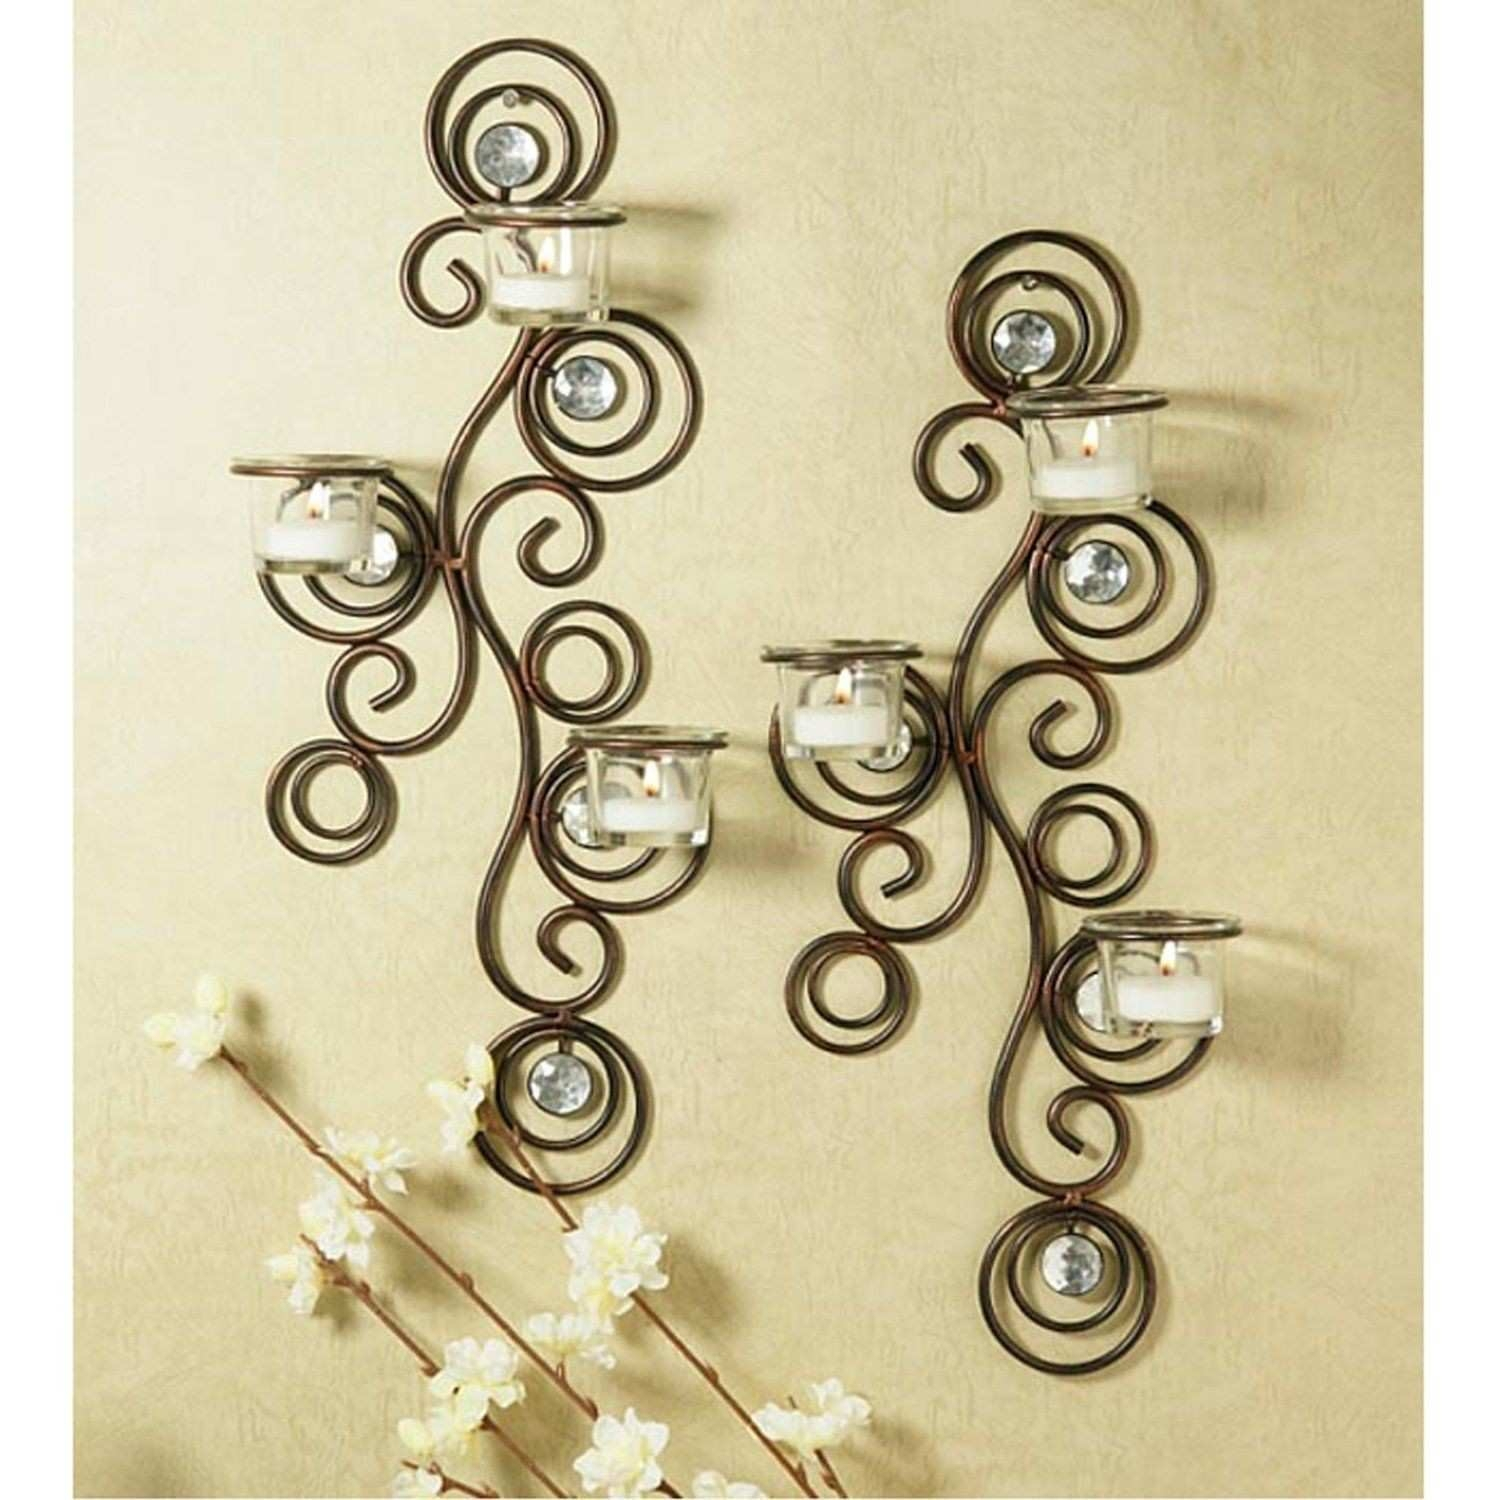 Awesome Oil Rubbed Bronze Wall Decor | Wall Ideas Throughout Oil Rubbed Metal Wall Decor (View 5 of 30)